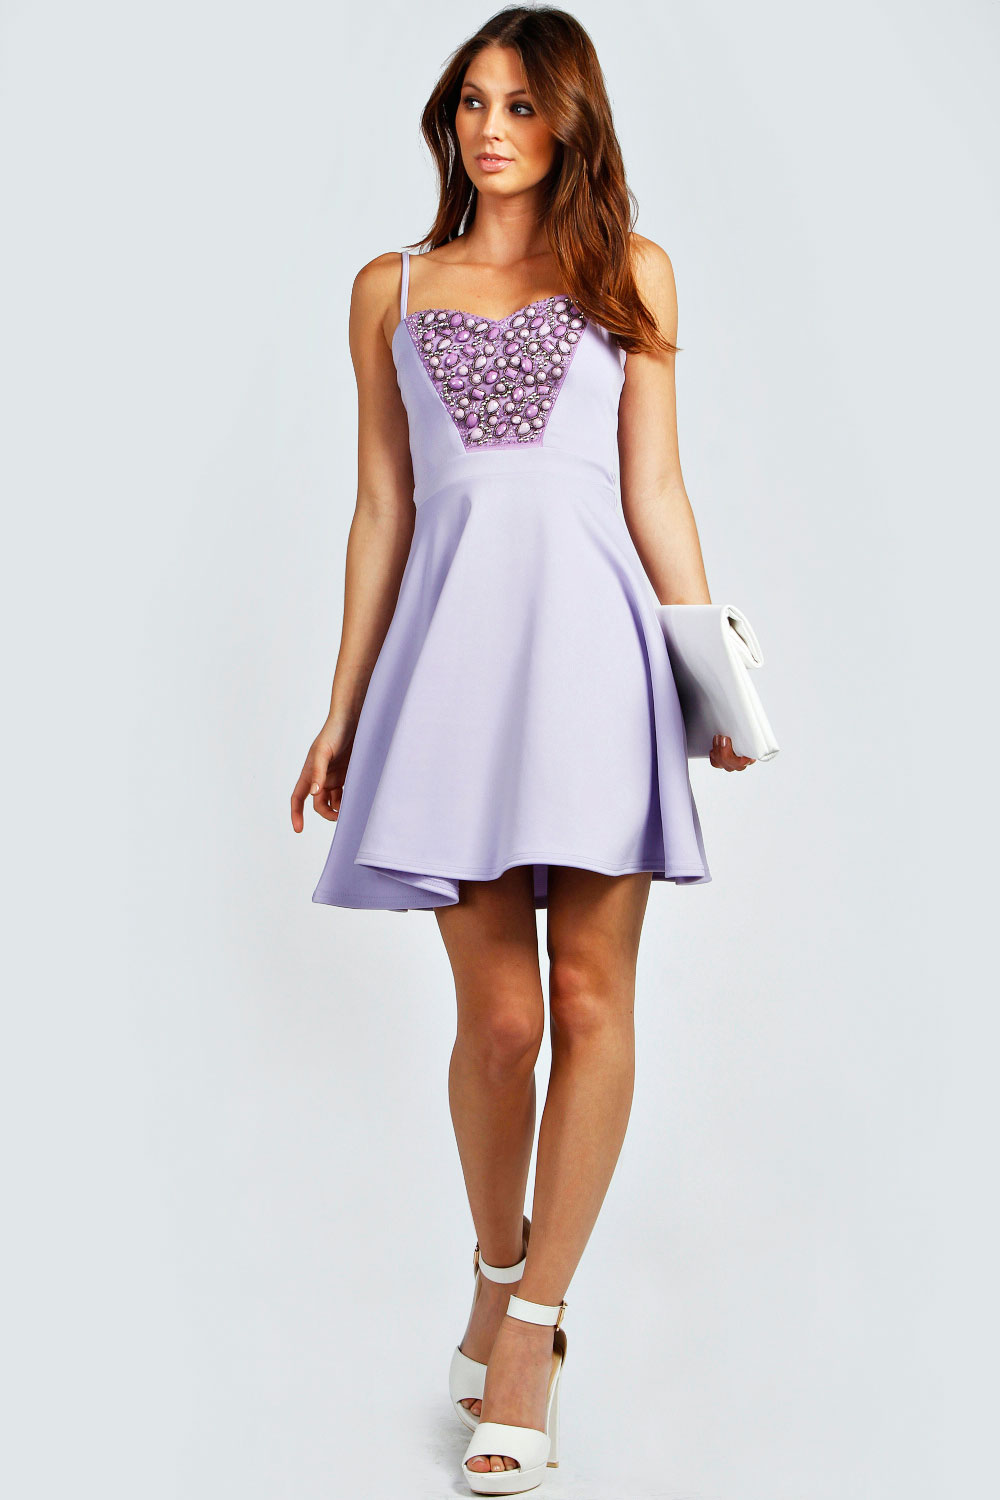 Boohoo-Womens-Ladies-Maya-Embellished-Sweetheart-Neck-Strappy-Skater-Dress